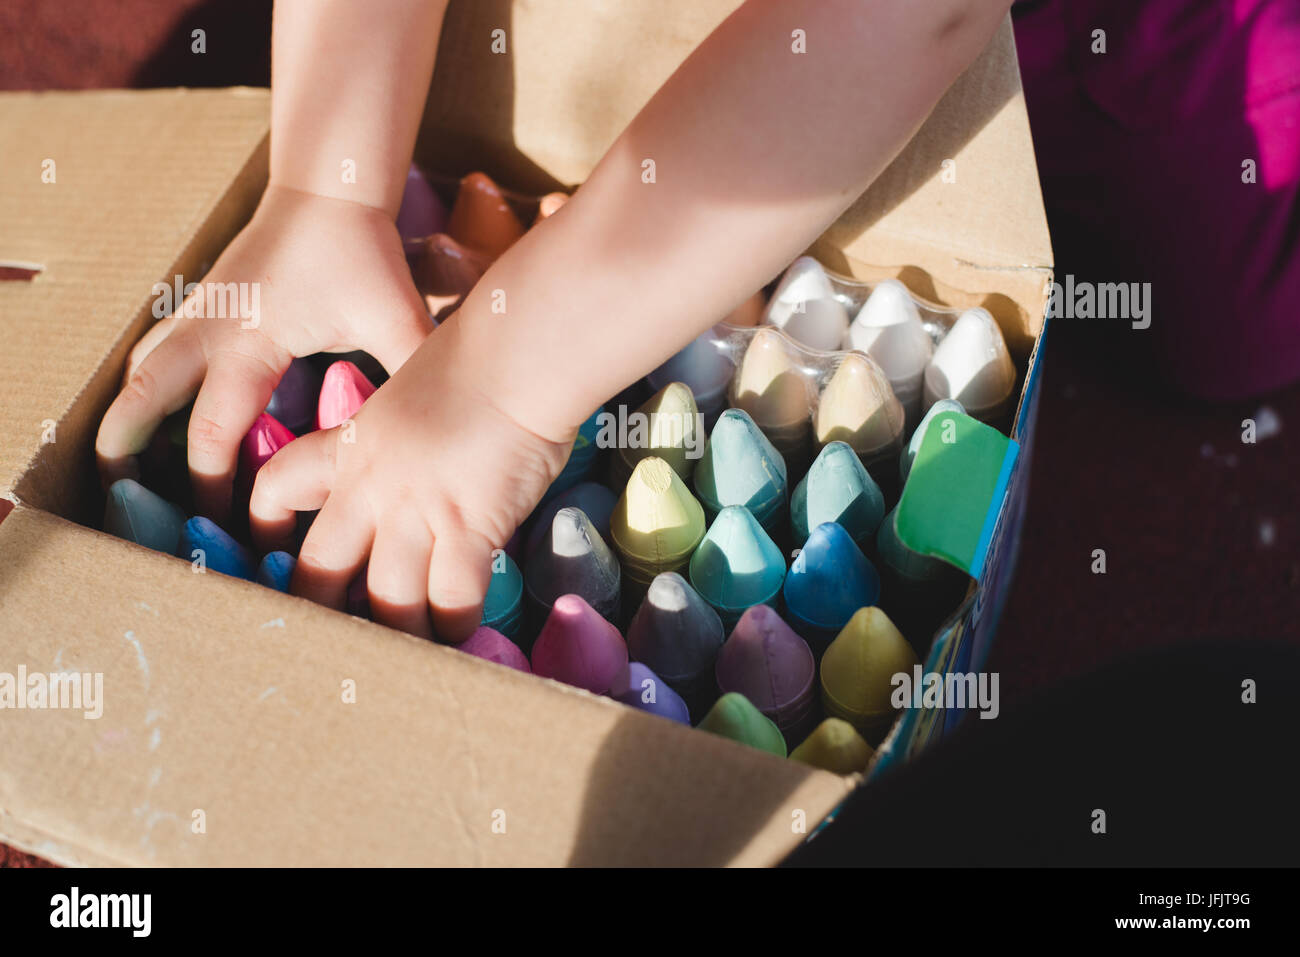 A child's hands reach into a box of sidewalk chalk. - Stock Image